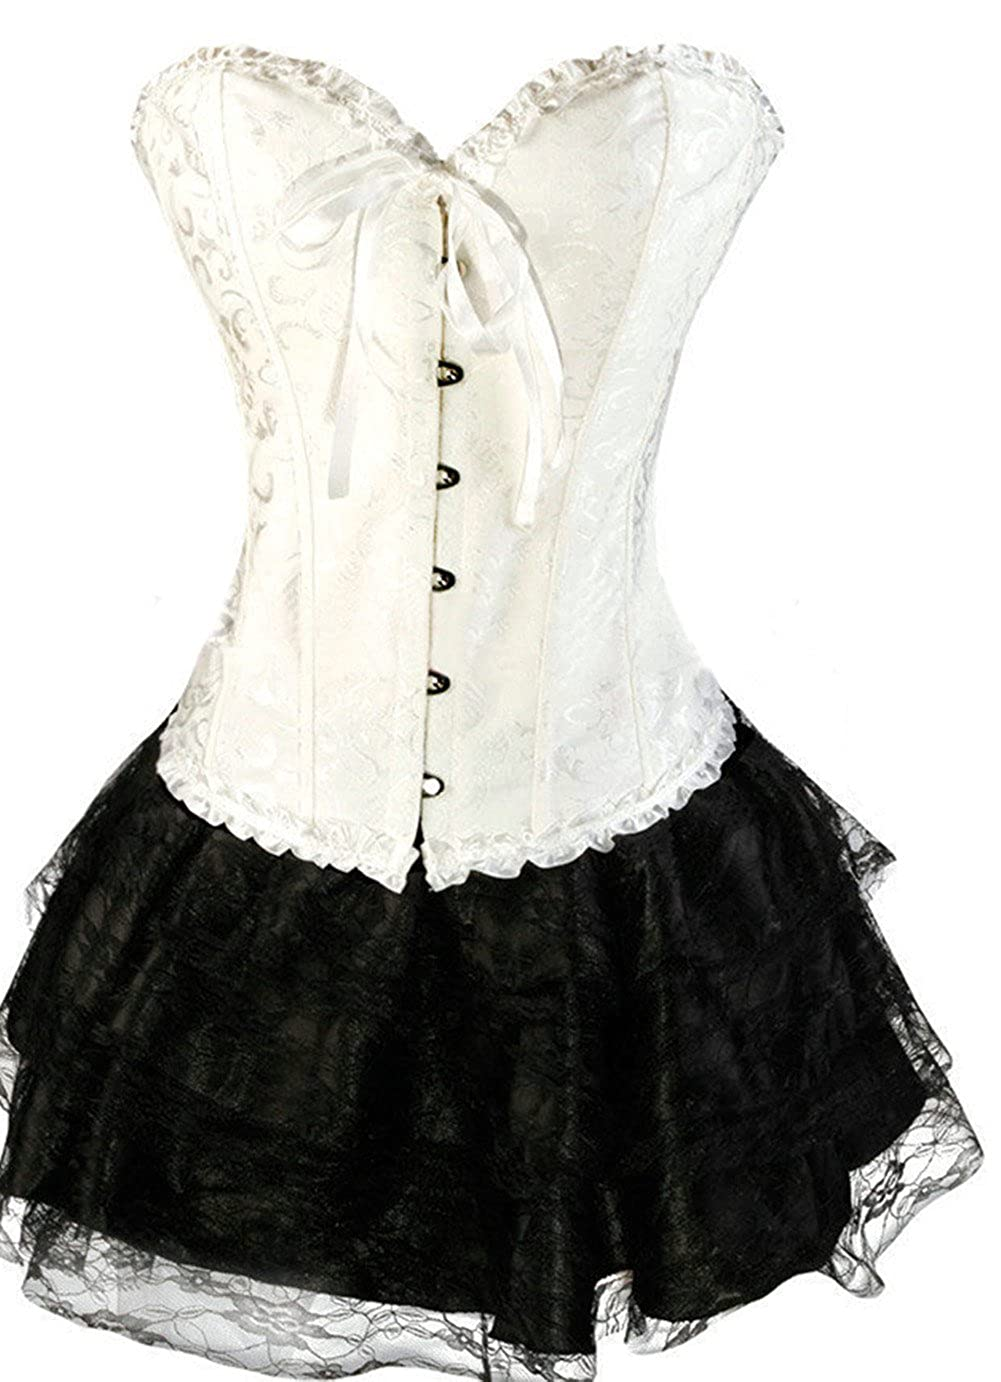 0369beebf3 Martya Women s Gothic Boned Basque Overbust Corset Lace up Bustier with  Skirt Plus Size 6-16  Amazon.co.uk  Clothing